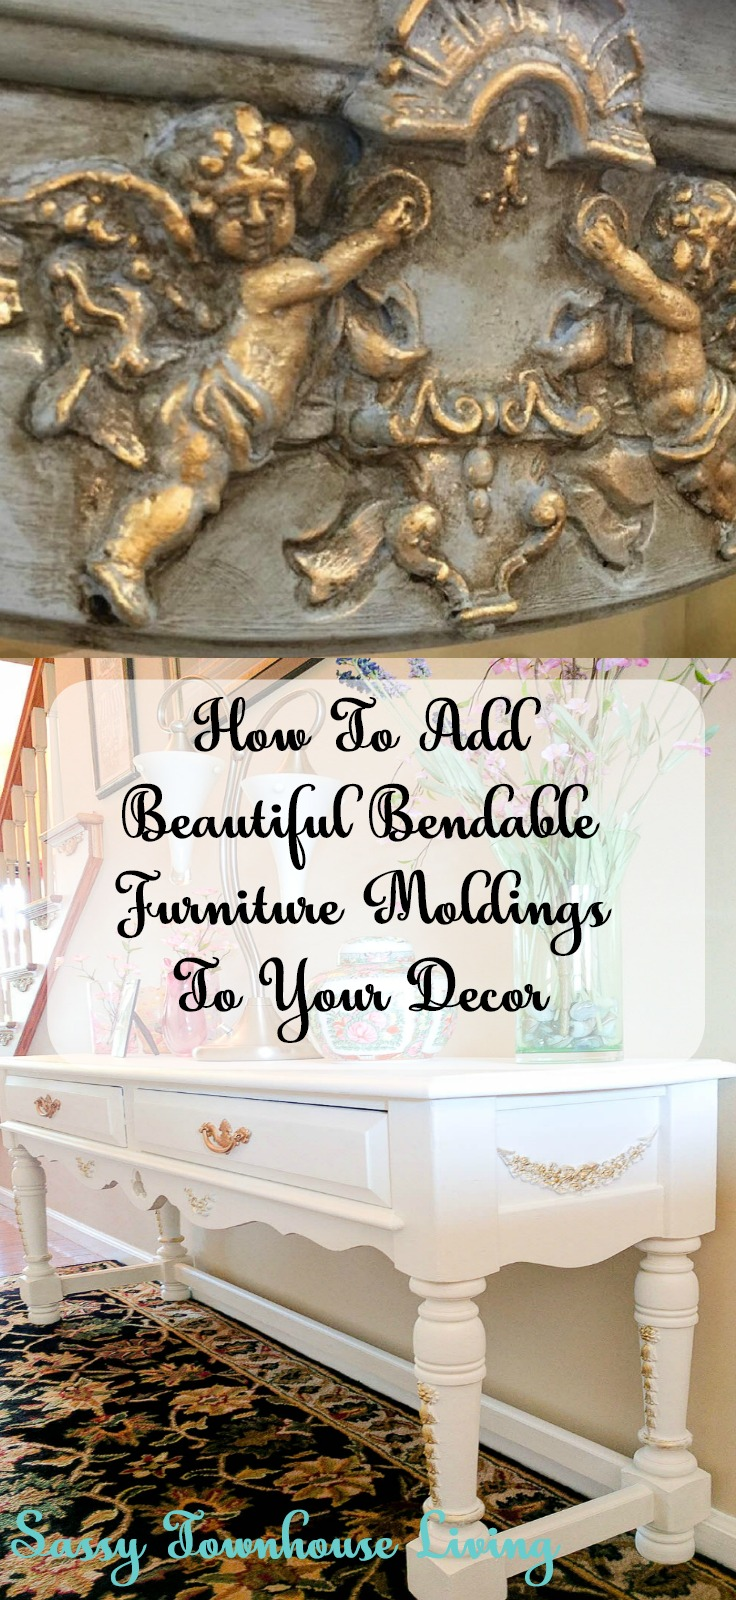 How To Add Beautiful Bendable Furniture Moldings To Your Decor - Sassy Townhouse Living